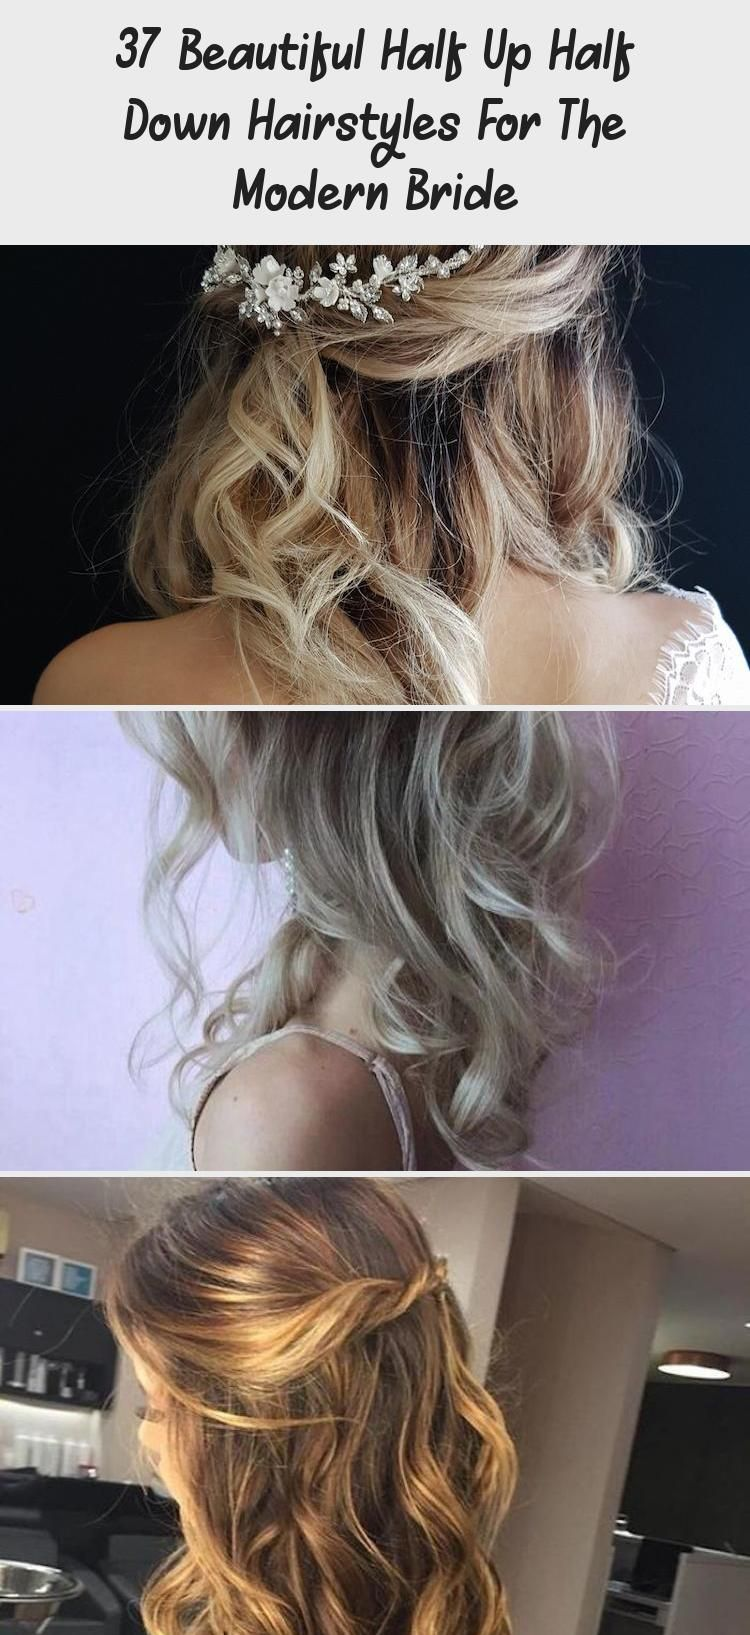 Newest Absolutely Free Dutch Braid Low Messy Bun Summer Hair Dutch Braid Low Messy Bun Summer Hair With...  Tips   Dutch Braid Low Messy Bun Summer Hair Dutch Braid Low Messy Bun Summer Hair With The July 4th Weeke #Absolutely #Braid #bun #Dutch #Free #Hair #messy #Newest #summer #Tips # low pigtail Braids # pigtail Braids messy # pigtail Braids outfit